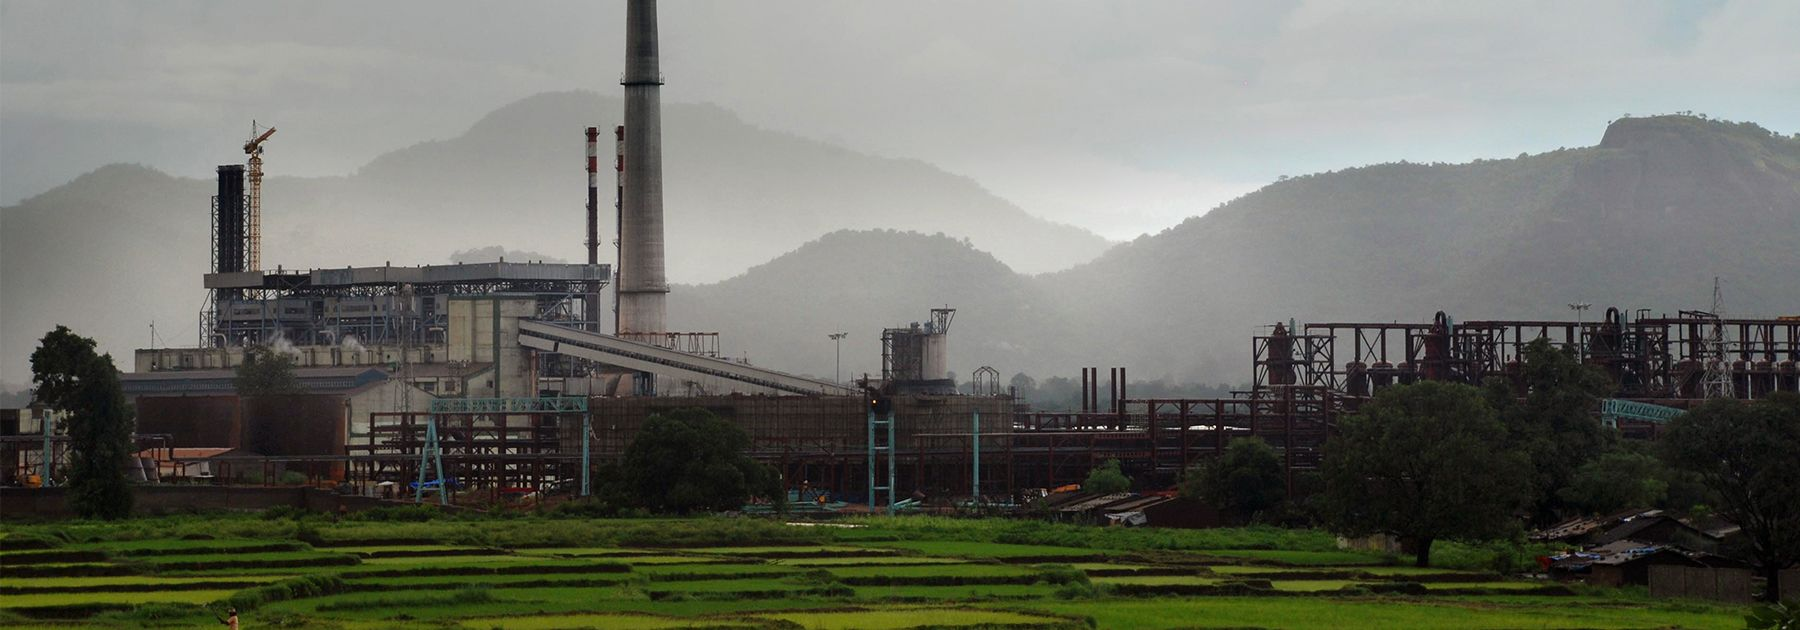 A general view of the Vedanta aluminum refinery at Lanjigarh. (STRDEL/AFP/Getty Images)